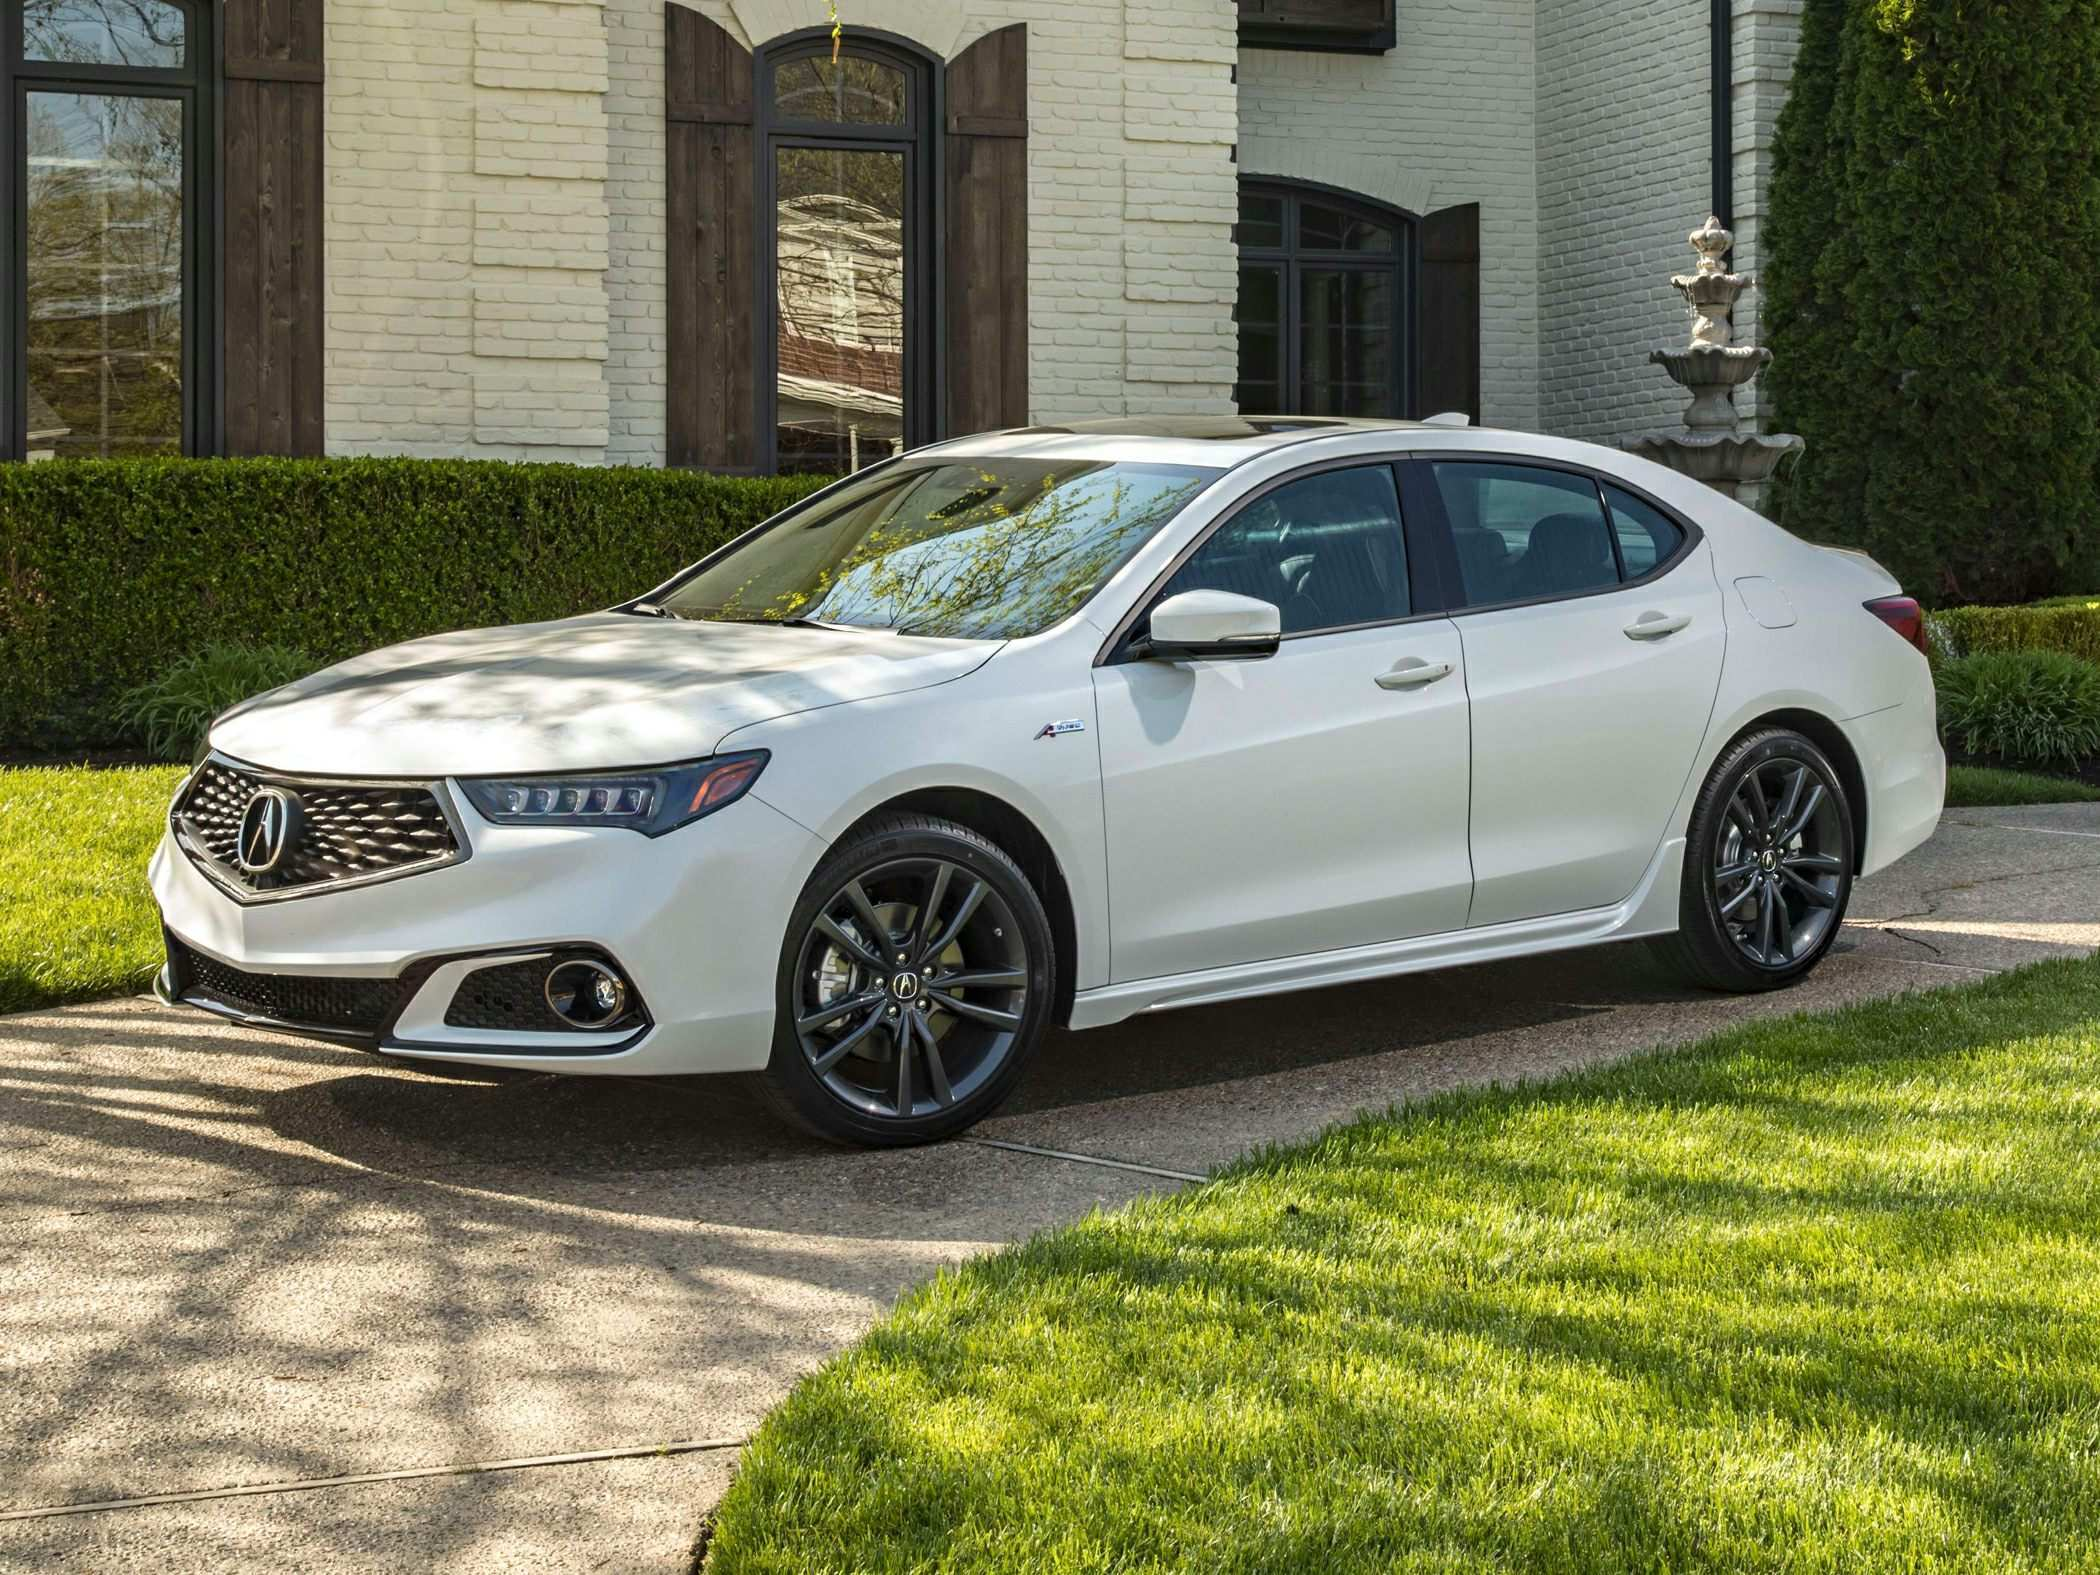 54 The Best Acura Tlx 2020 Price Configurations